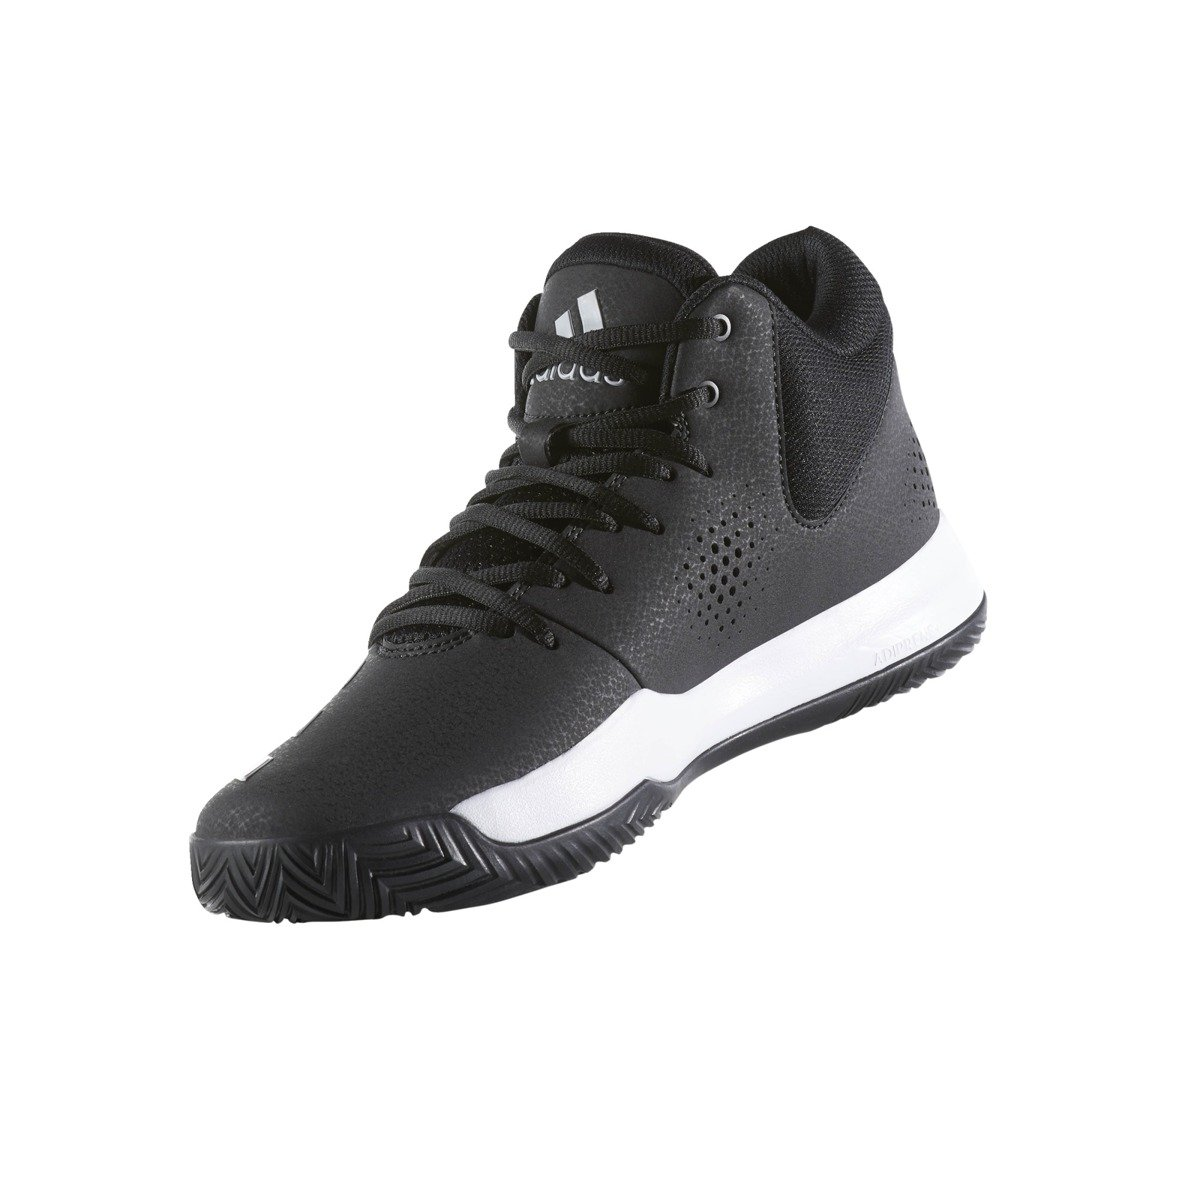 864104967ce9 ... Adidas Court Fury 2017 Shoes - BY4188 ...